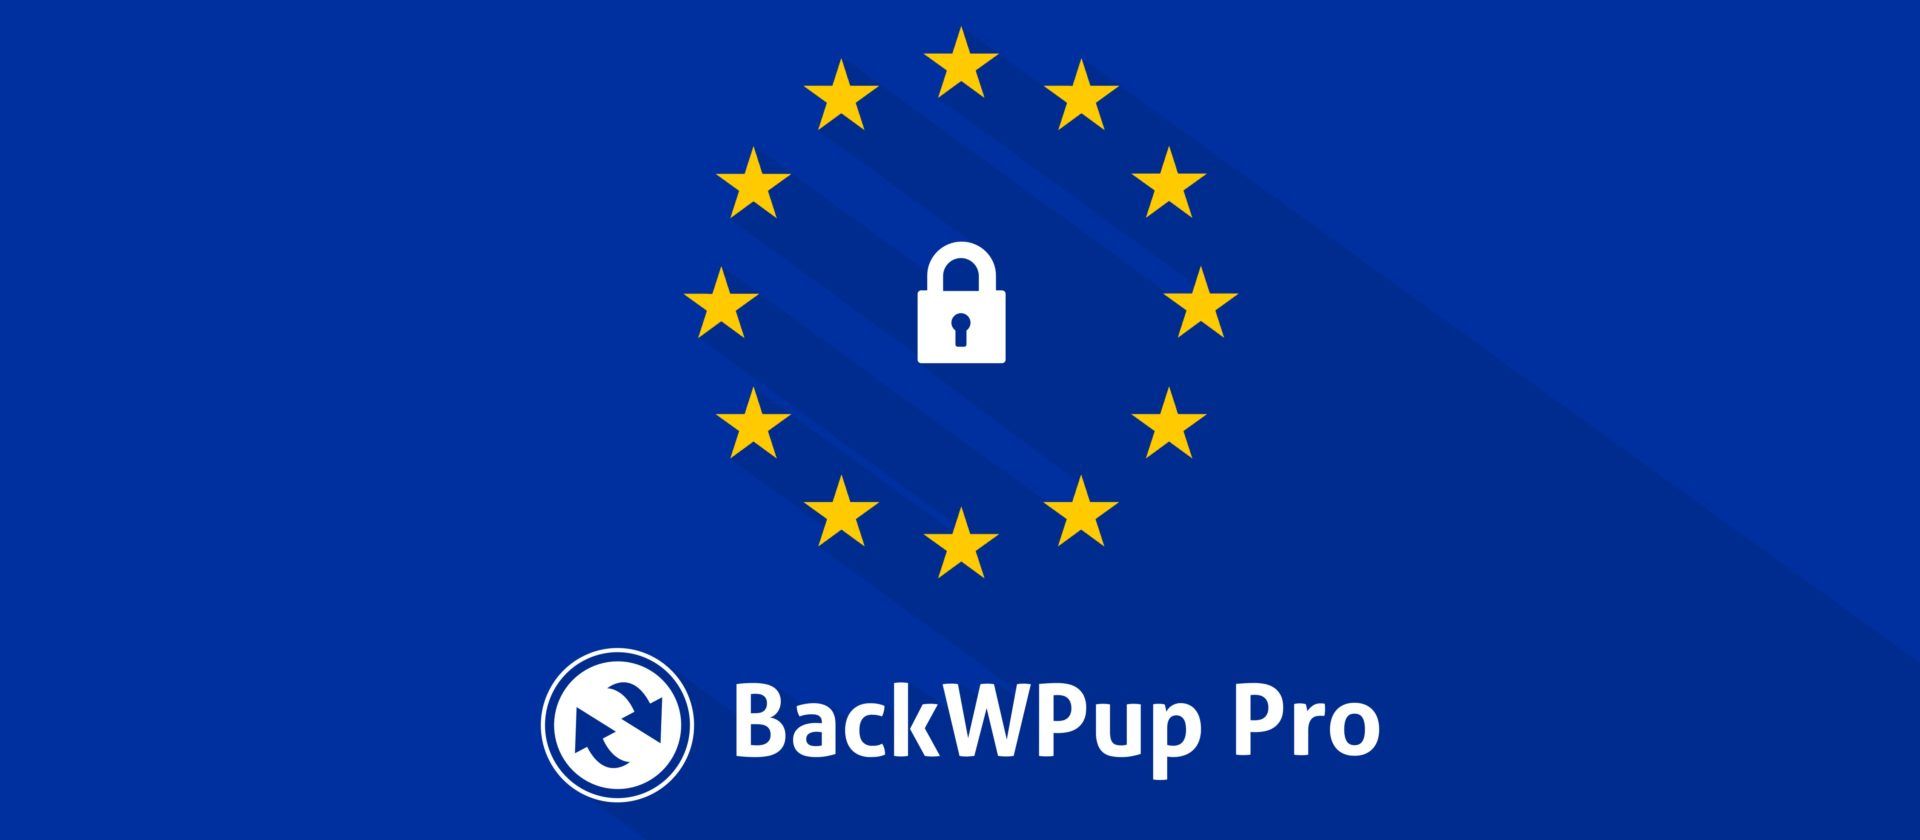 Make your WordPress backup plugin GDPR compliant with BackWPup.